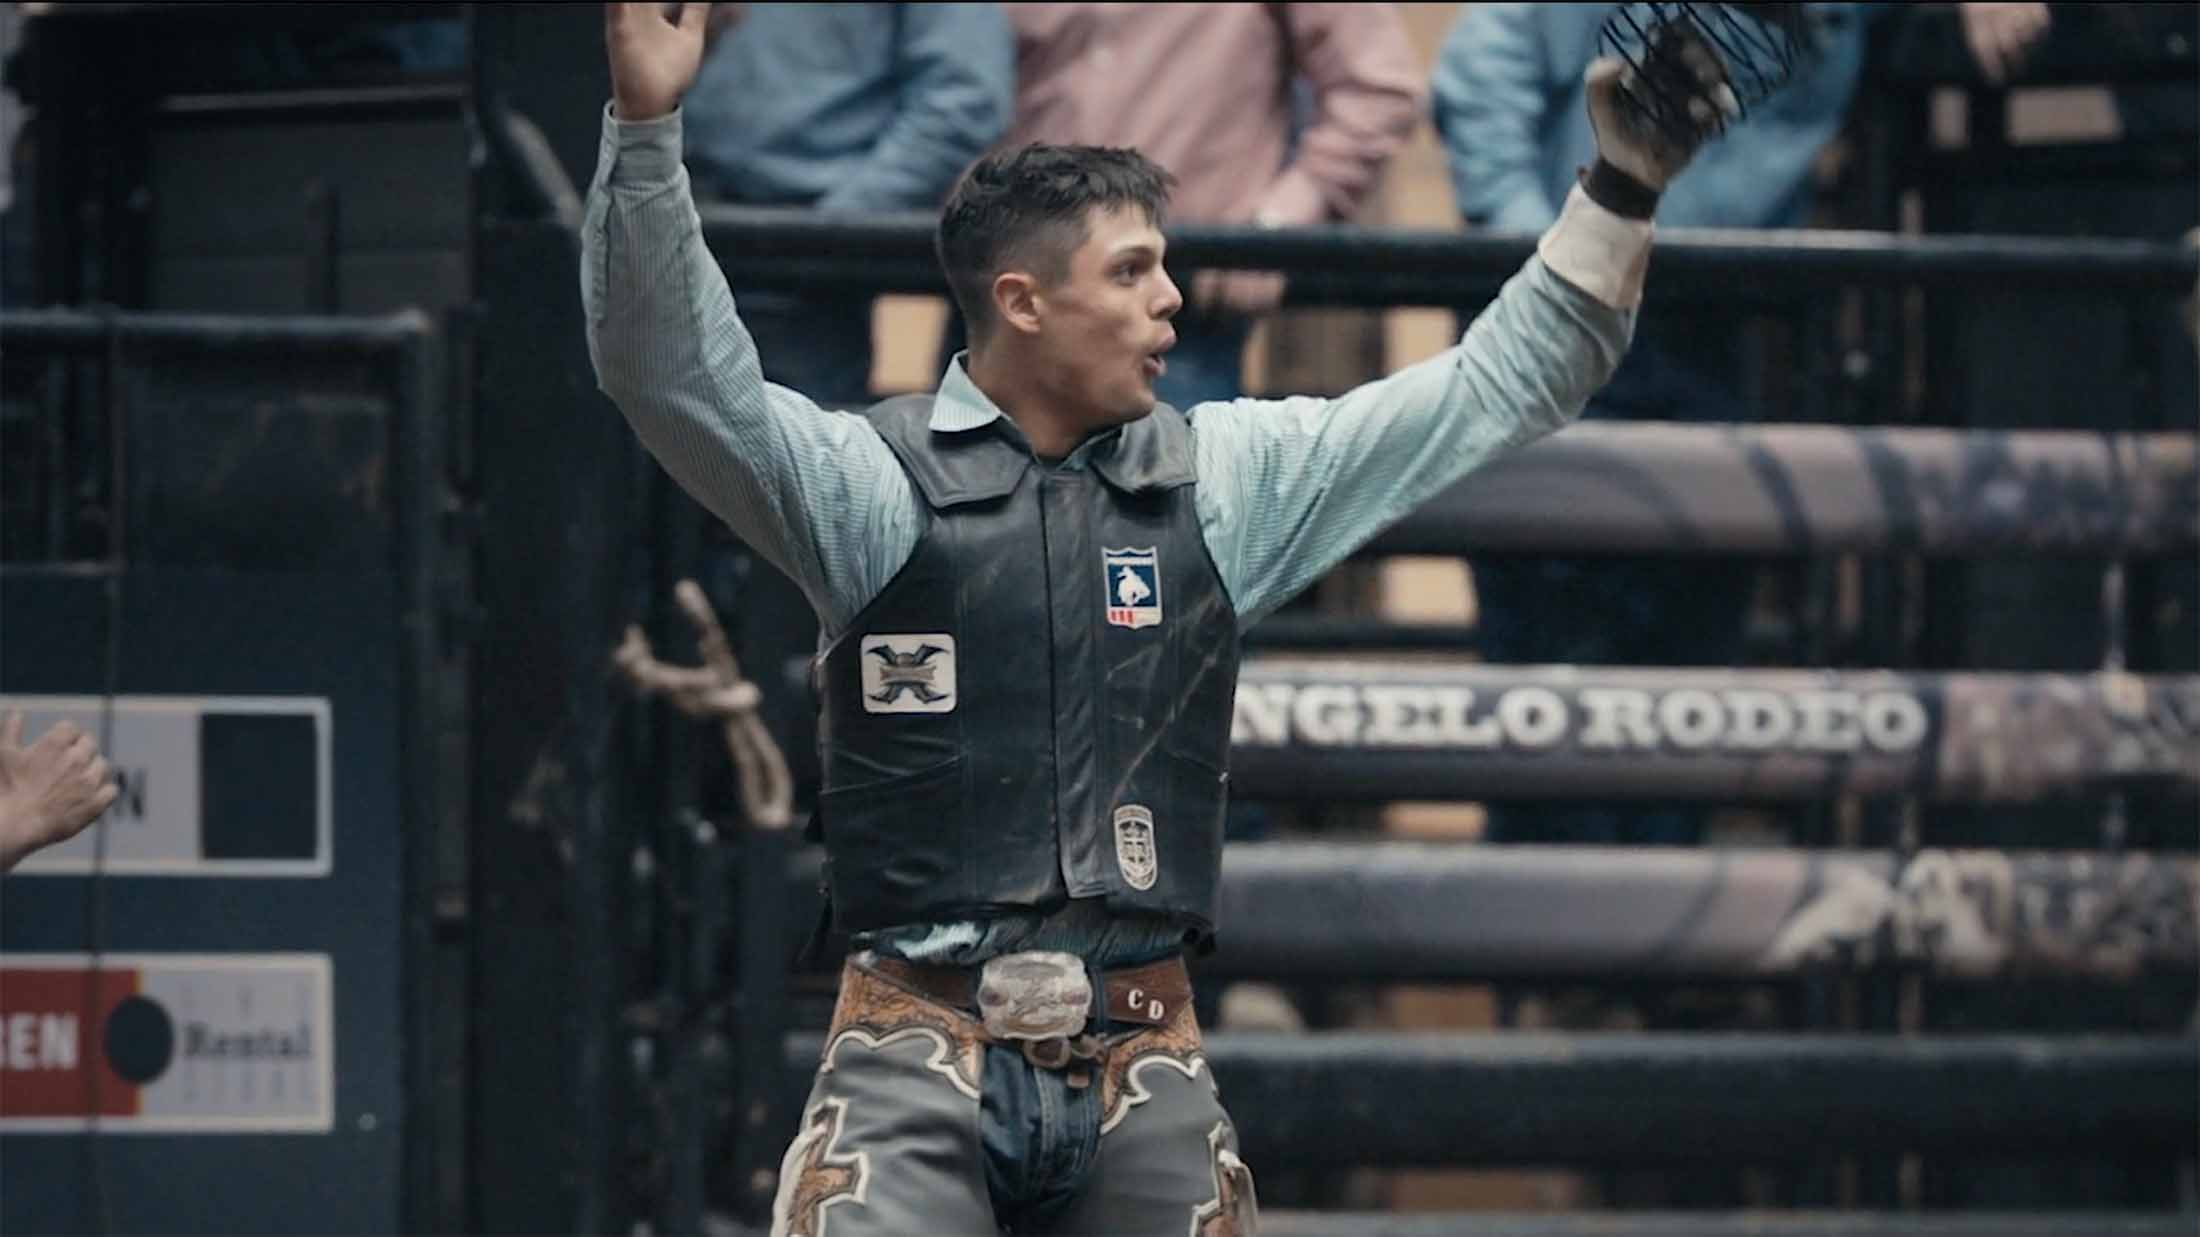 CINCH bullrider Chase Daugherty celebrates after taking the lead in San Angelo, Texas